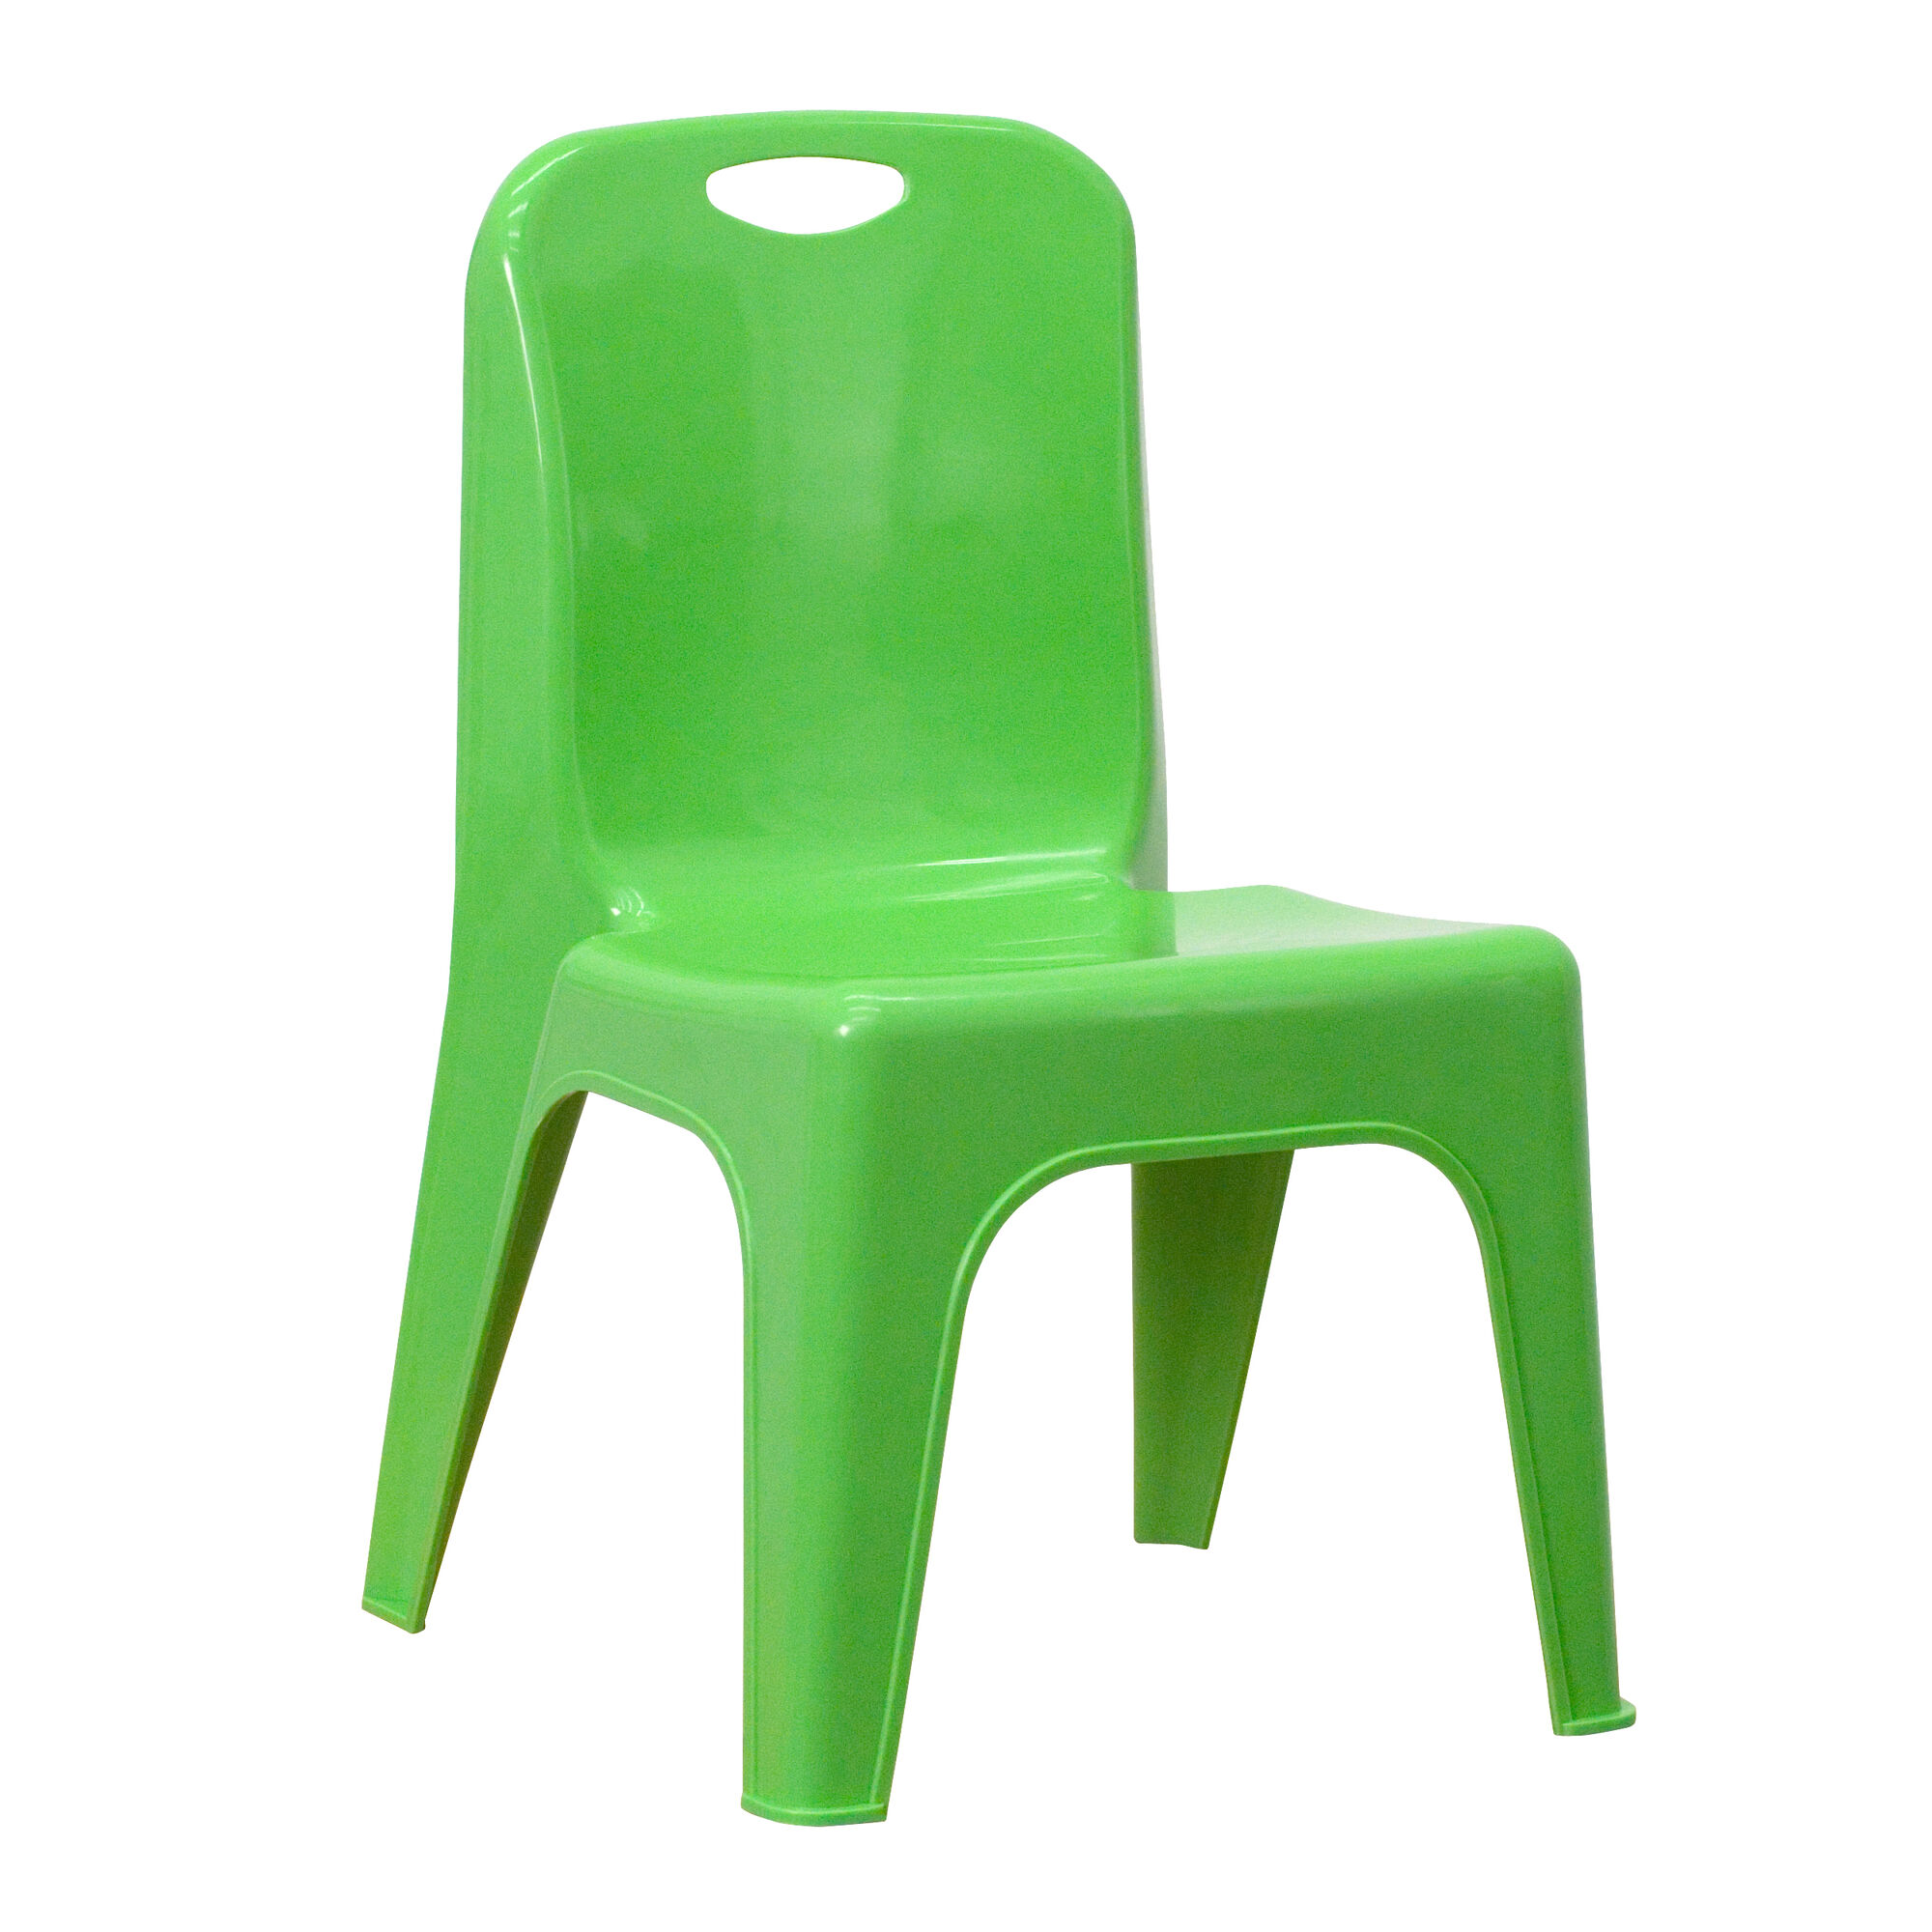 Green Plastic Stackable School Chair with Carrying Handle and 11\'\' Seat  Height